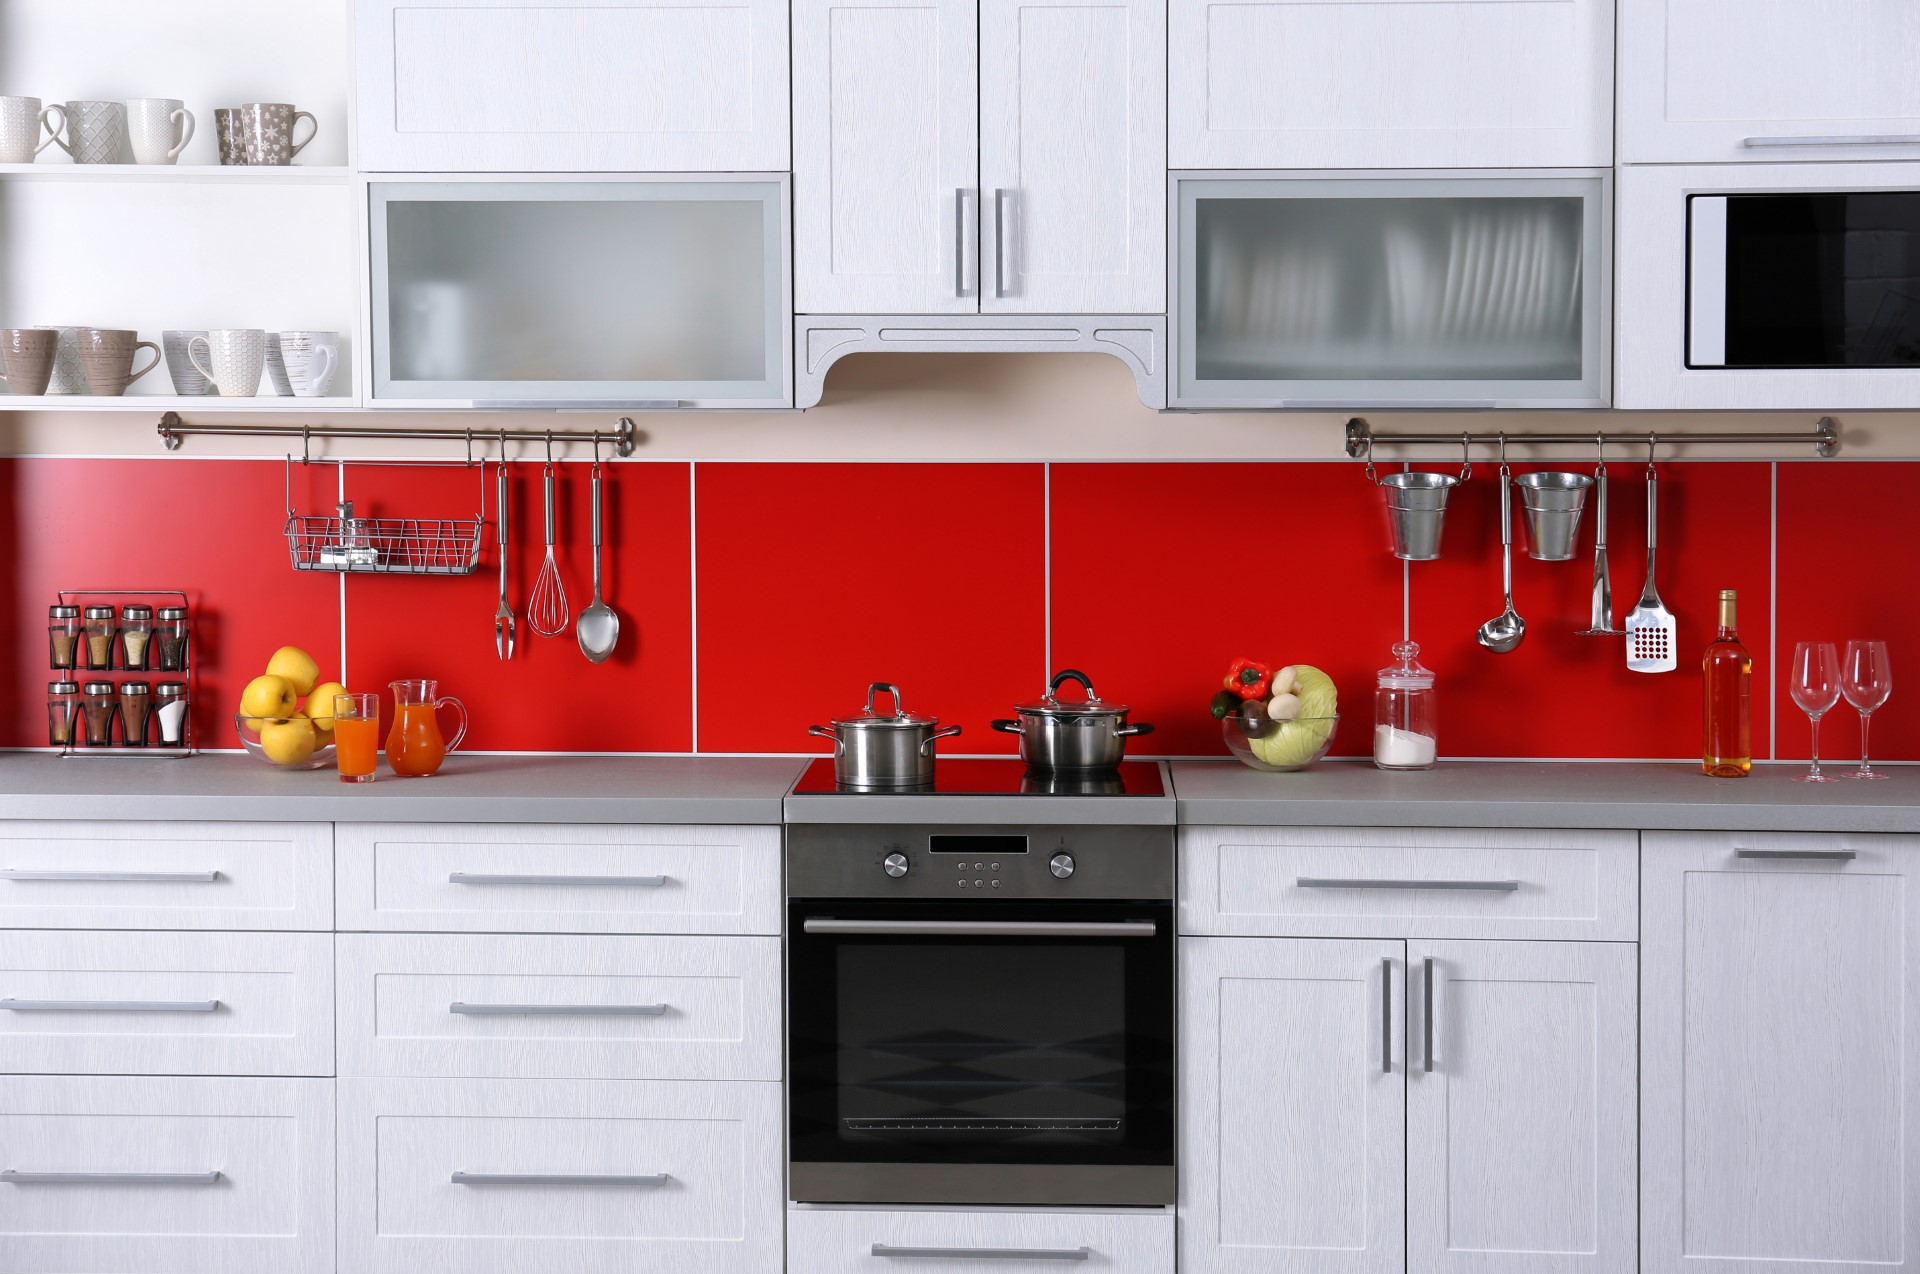 If you're looking for a design that shows character and personality, there's no better way to show it than a bright color like red as a backsplash to your countertop. Something like this would be great for a college dorm, or just an all-around fun person.